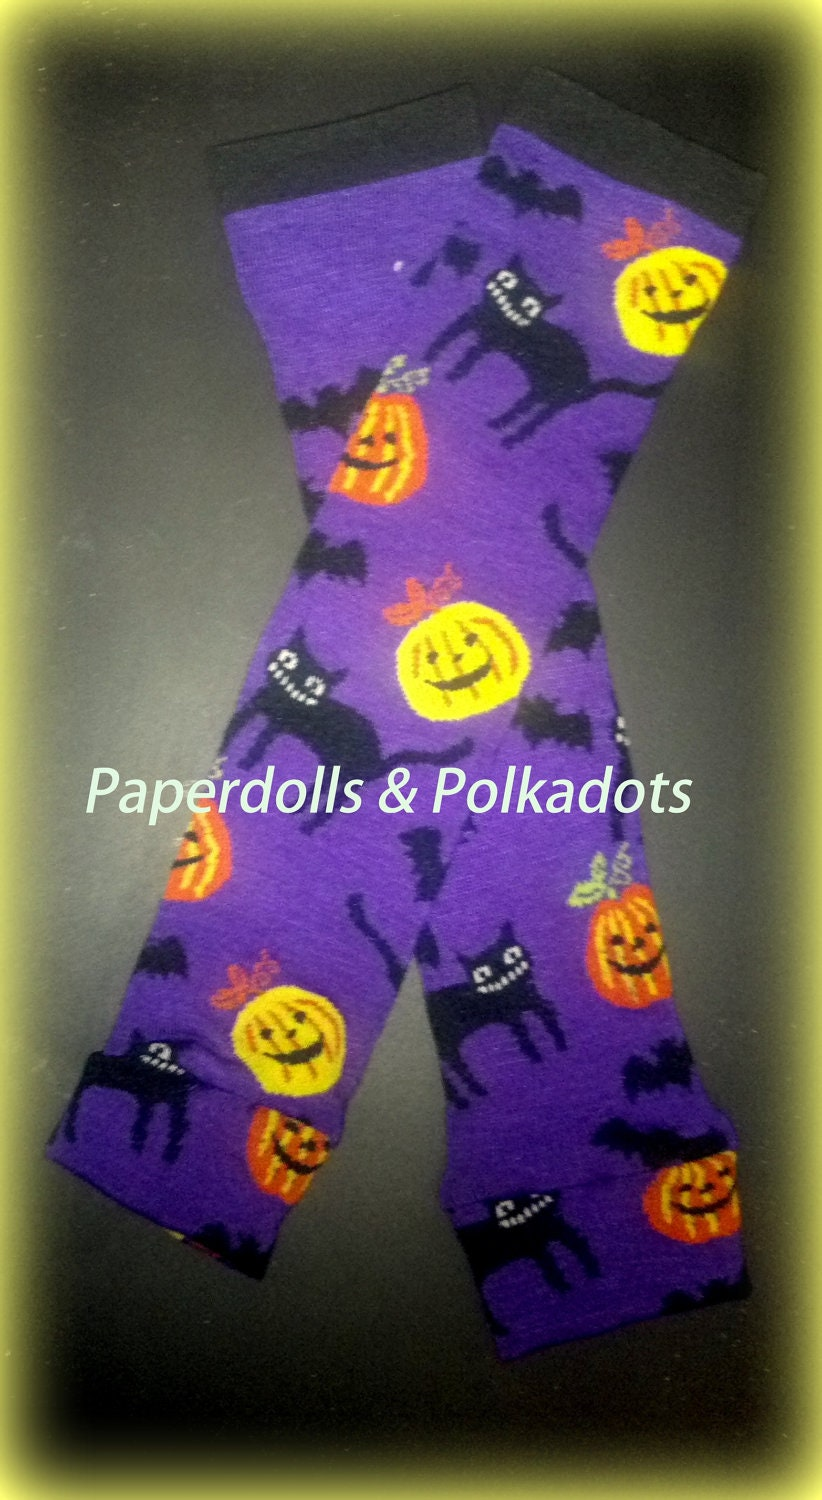 Cats, Bats and Pumpkins, Oh My - paperdollspolkadots